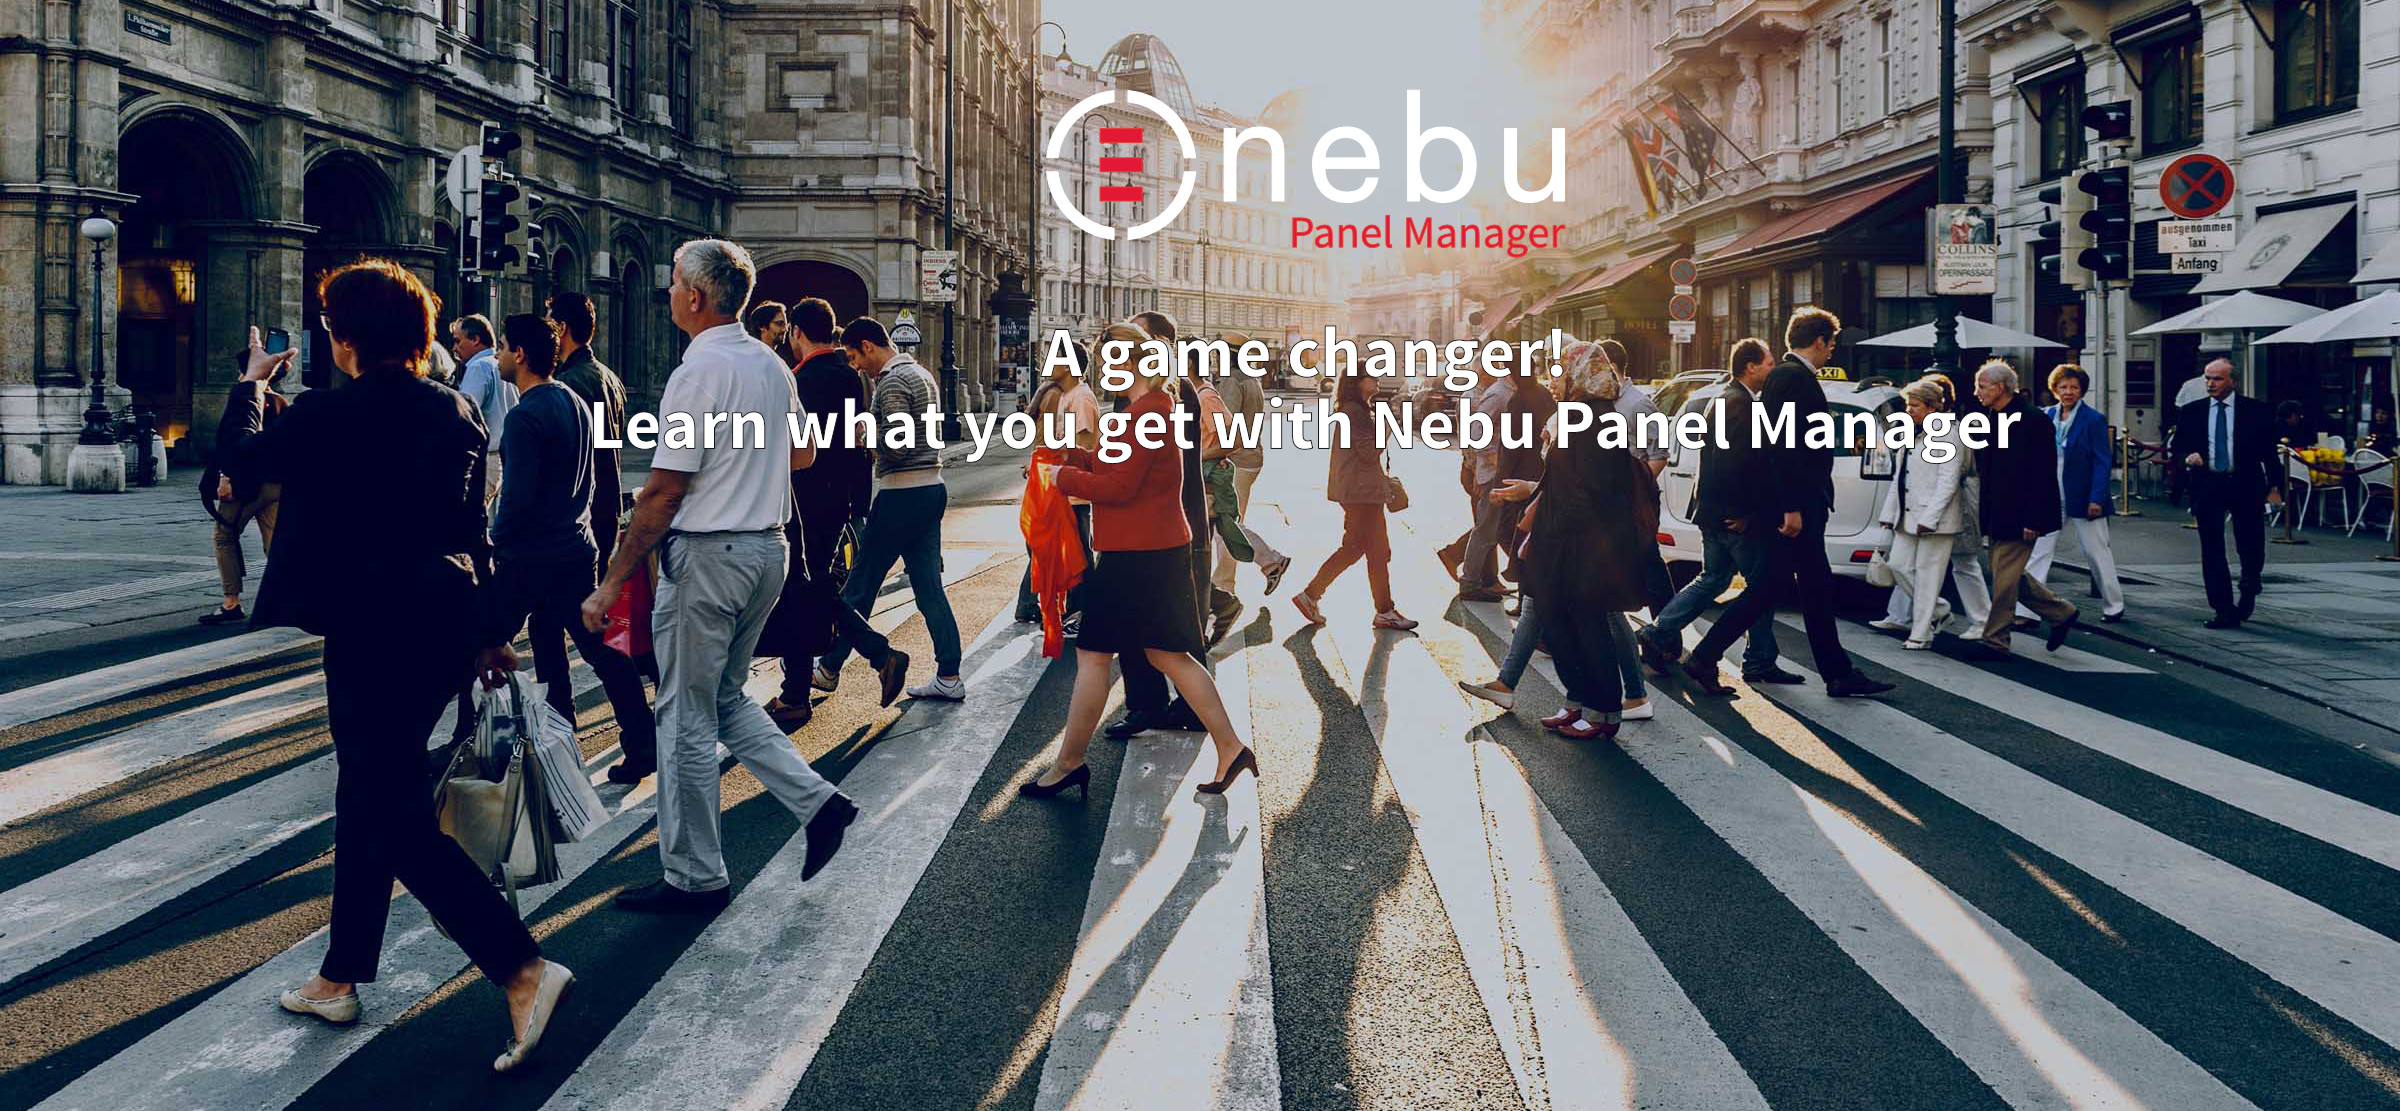 Learn what you get with Nebu Panel Manager